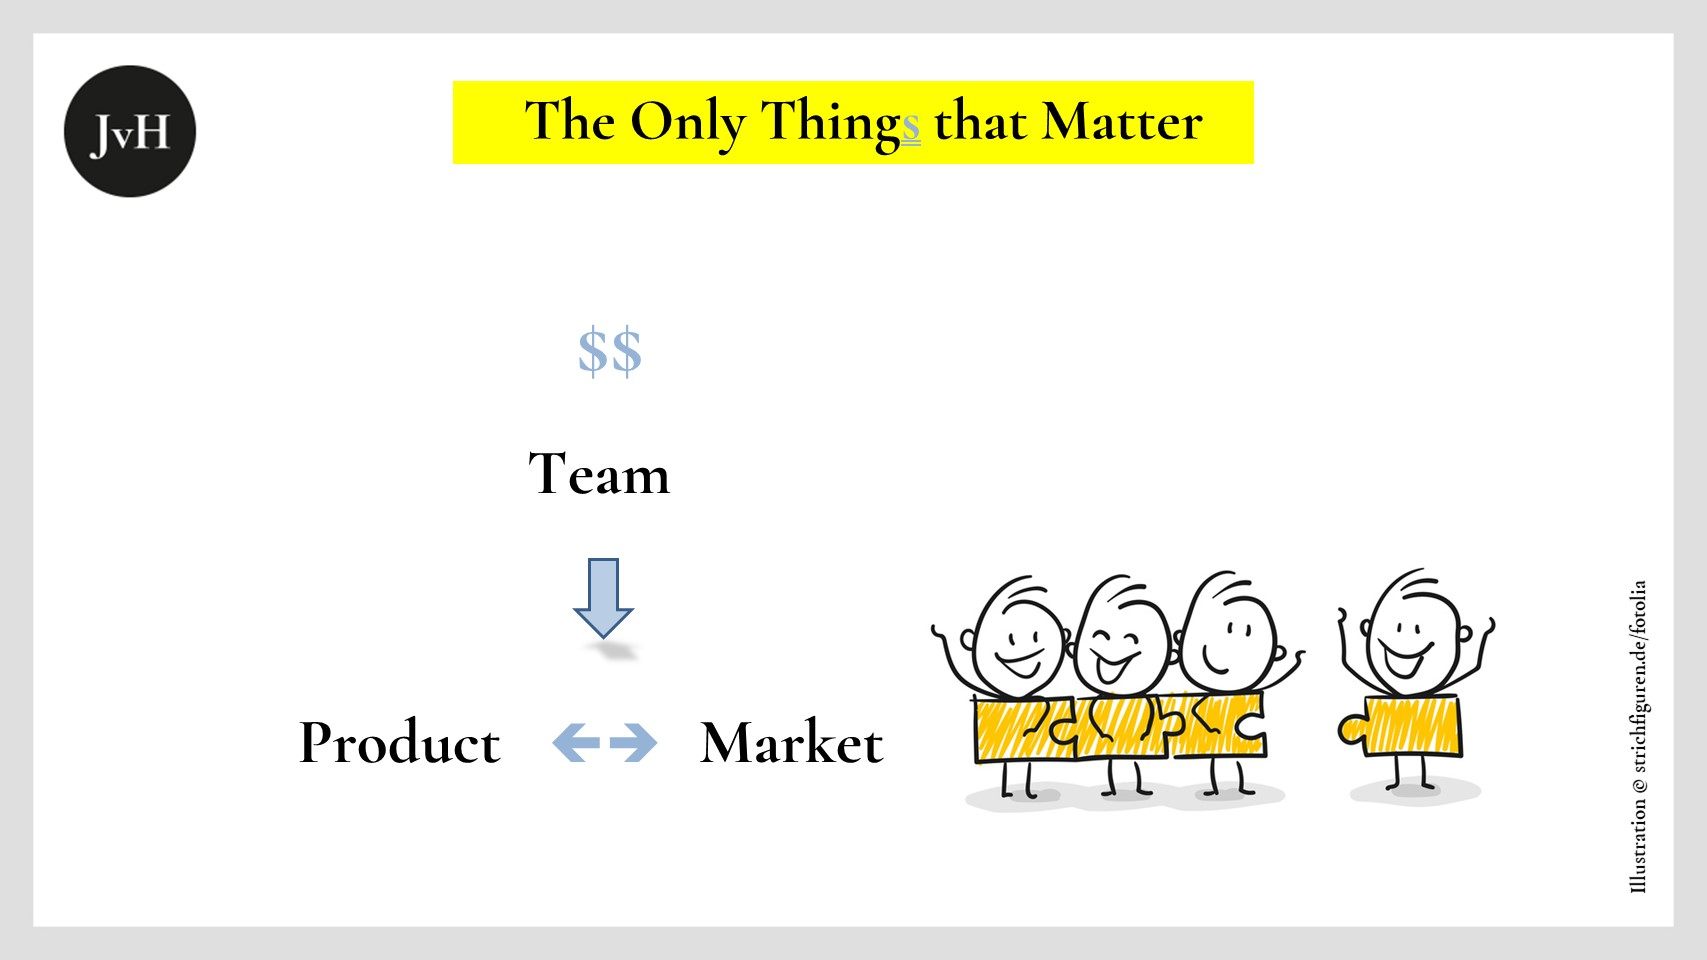 Only-Team-Matters